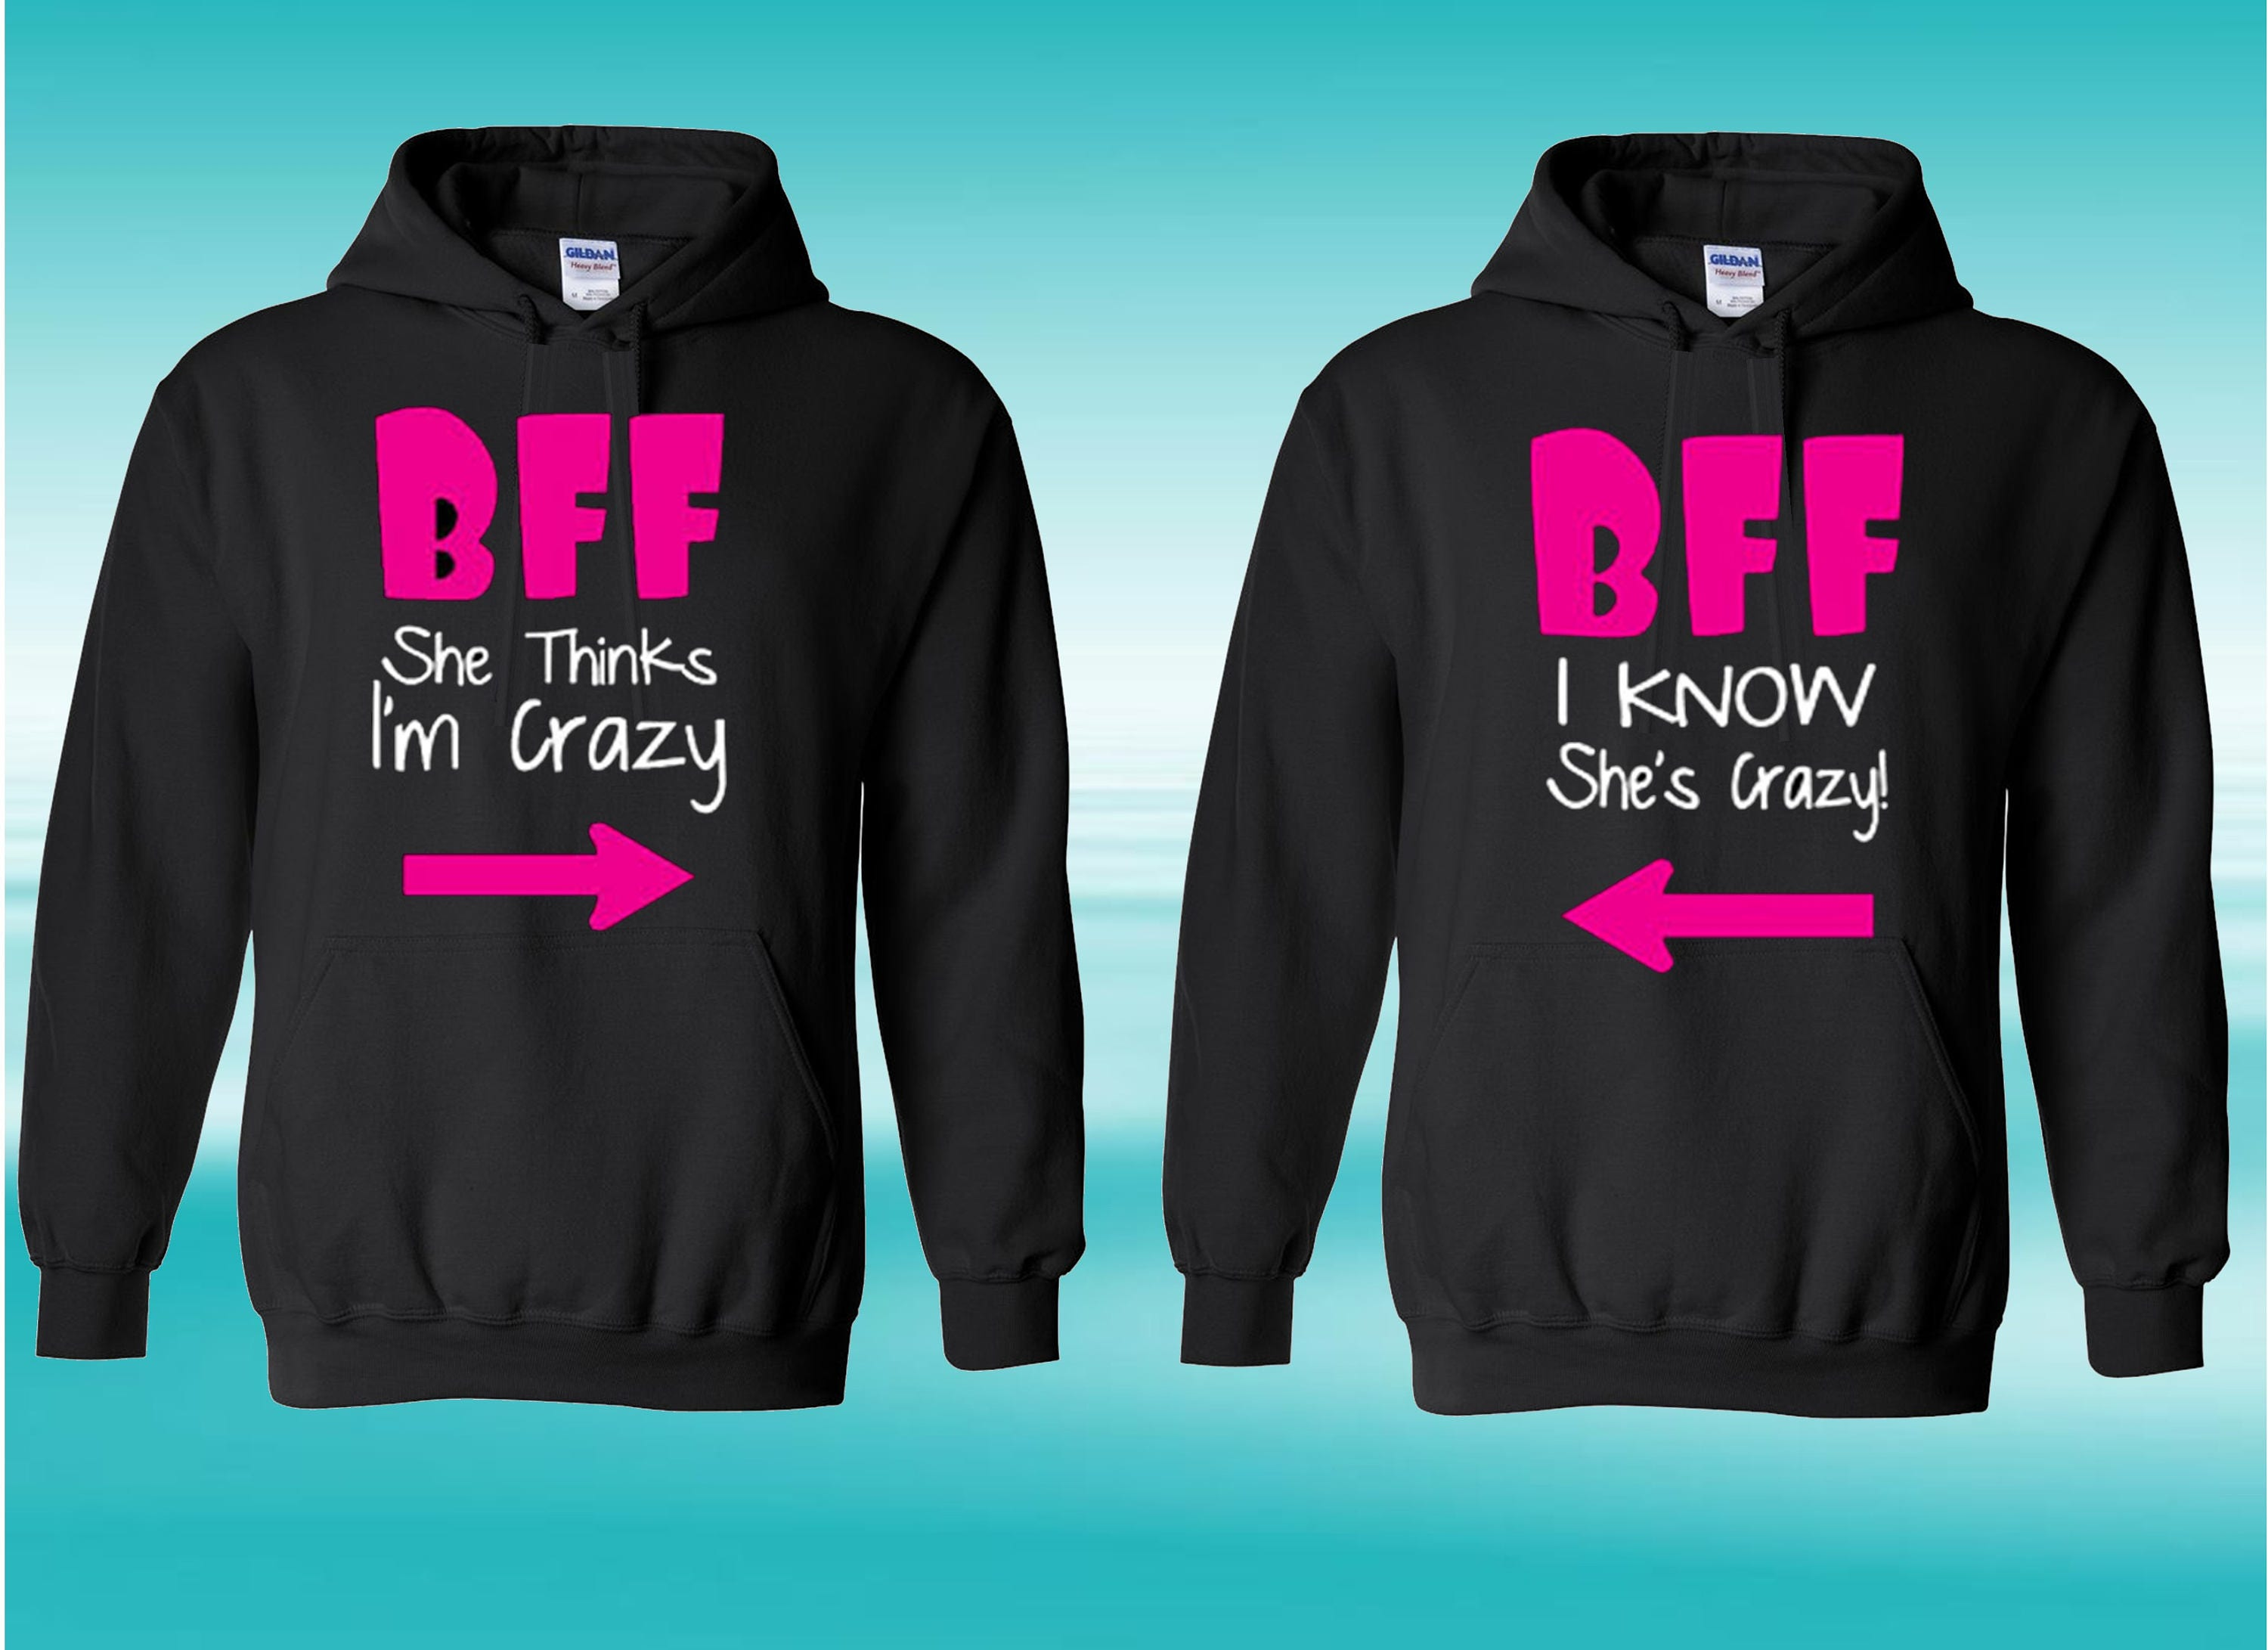 Best Friends Hoodies - FAST DISPATCH - Made with love - bff matching outfit drama queen princess hoodies gift for bff best friends outfit 7BpSwT1h4